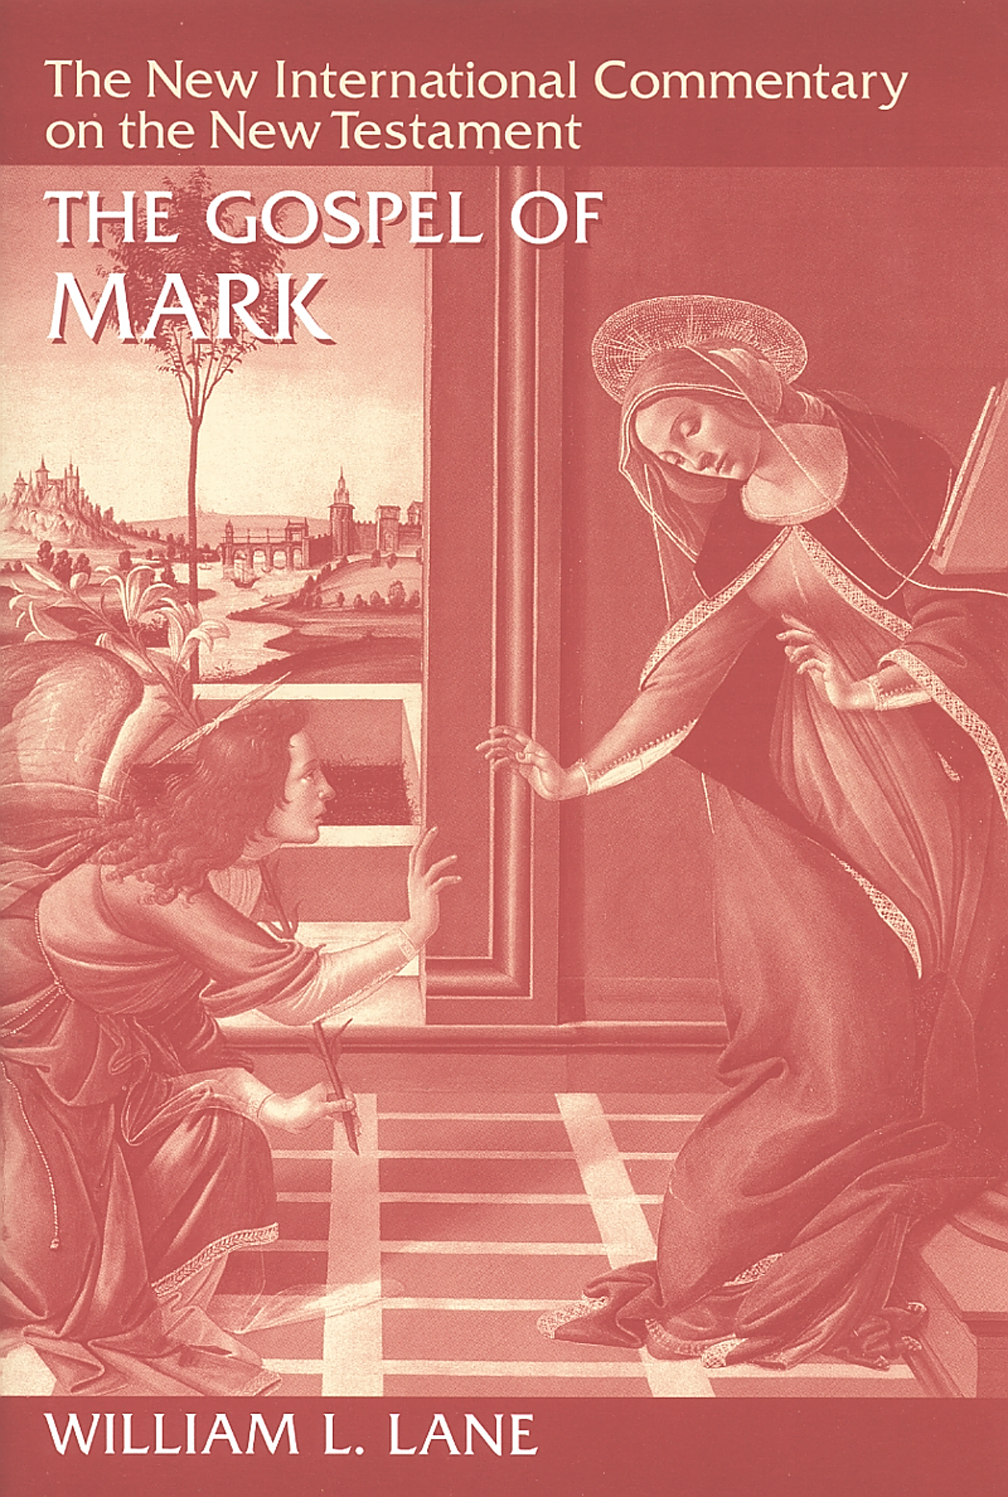 the gospel of mark essay Evidence for both the written and oral functioning of the gospel of mark is  fragmentary and often indirect  auerbach (1959) wrote about in his essay on  figura.